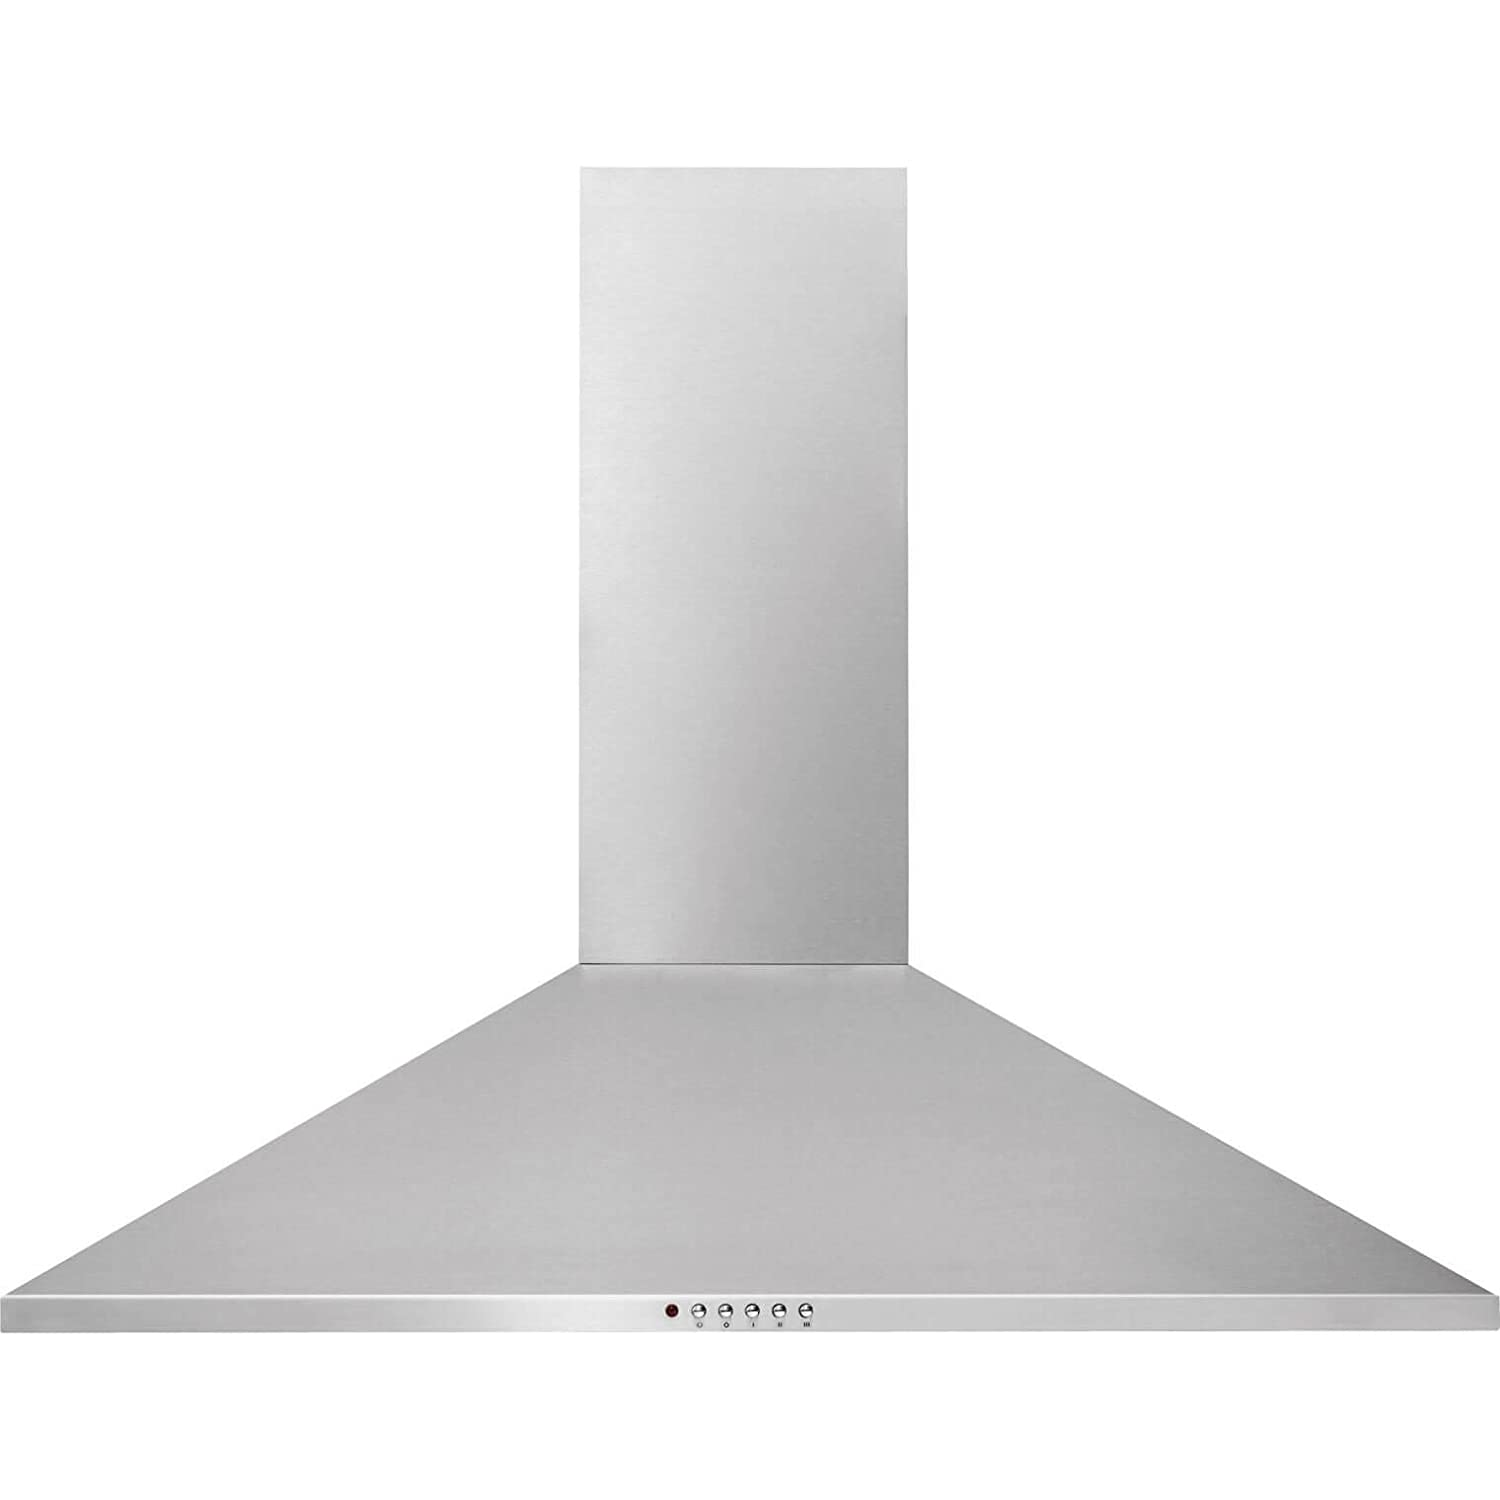 DMAFRIGFHWC3055LS - Frigidaire 30 Stainless Canopy Wall-Mounted Hood